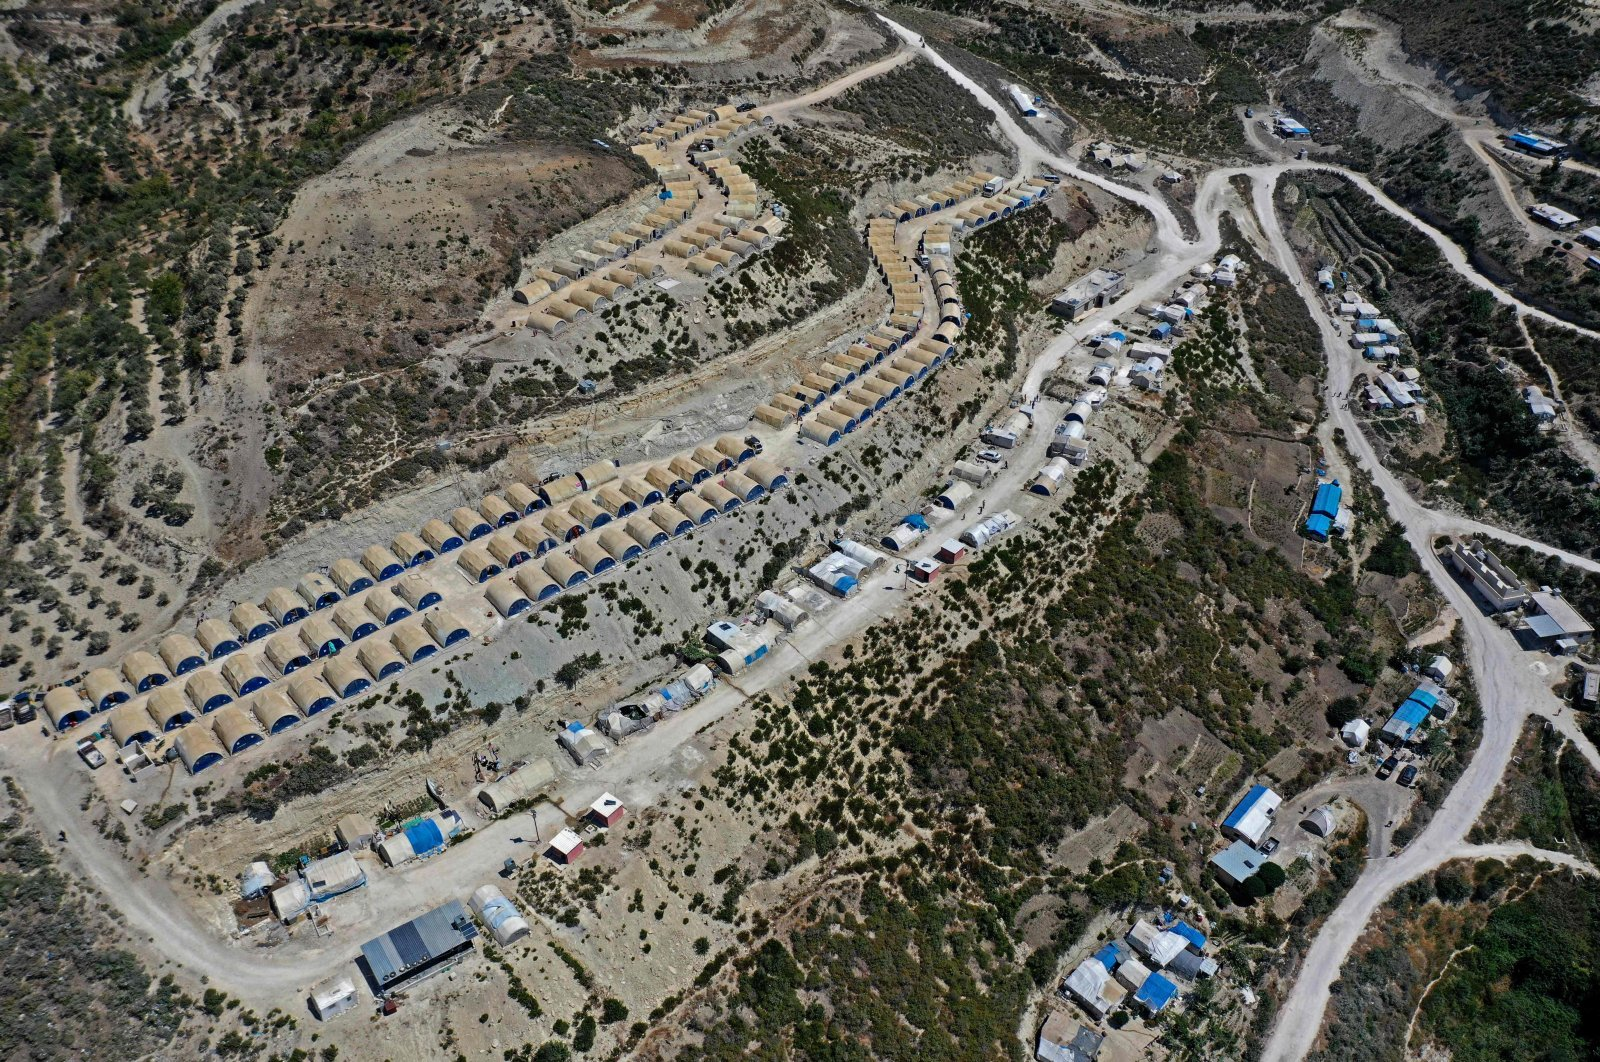 An aerial picture shows a tent camp for internally displaced Syrians in the Khirbet al-Joz area, in the west of the northwestern Idlib province near the border with Turkey, Syria, Aug. 18, 2020. (AFP Photo)